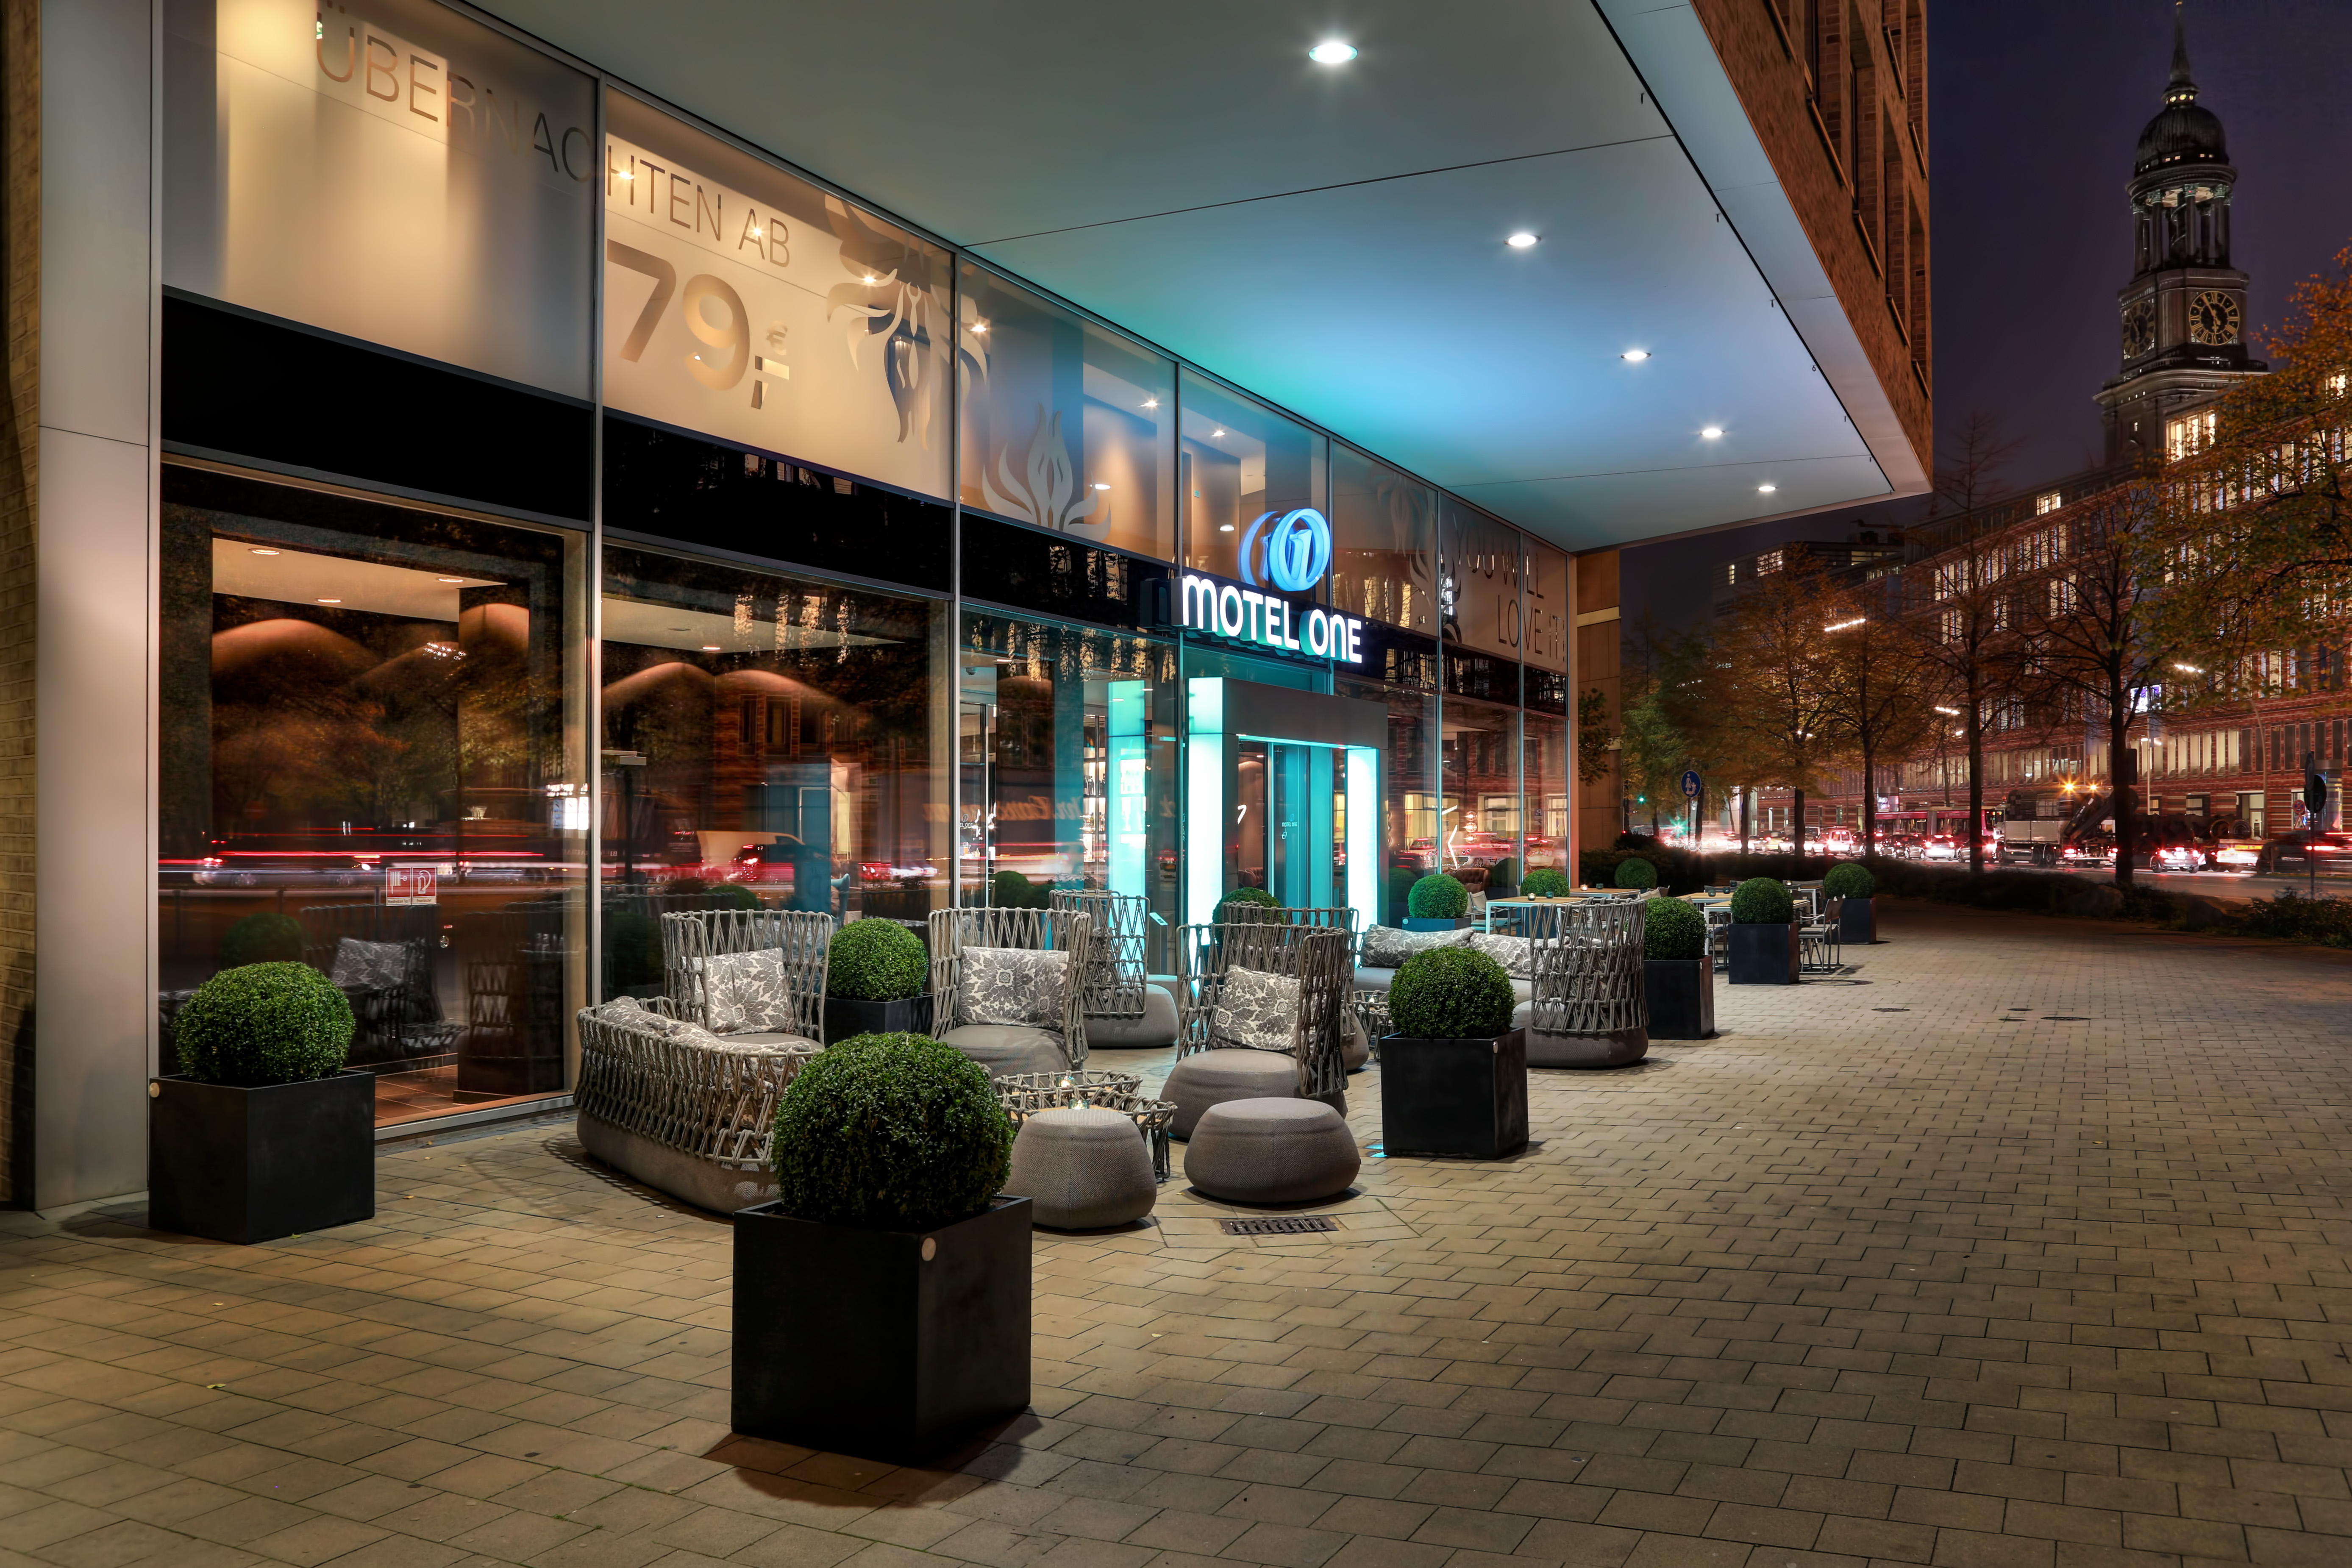 Hotel Hamburg am Michel Motel One | Design Hotels Hamburg am Michel